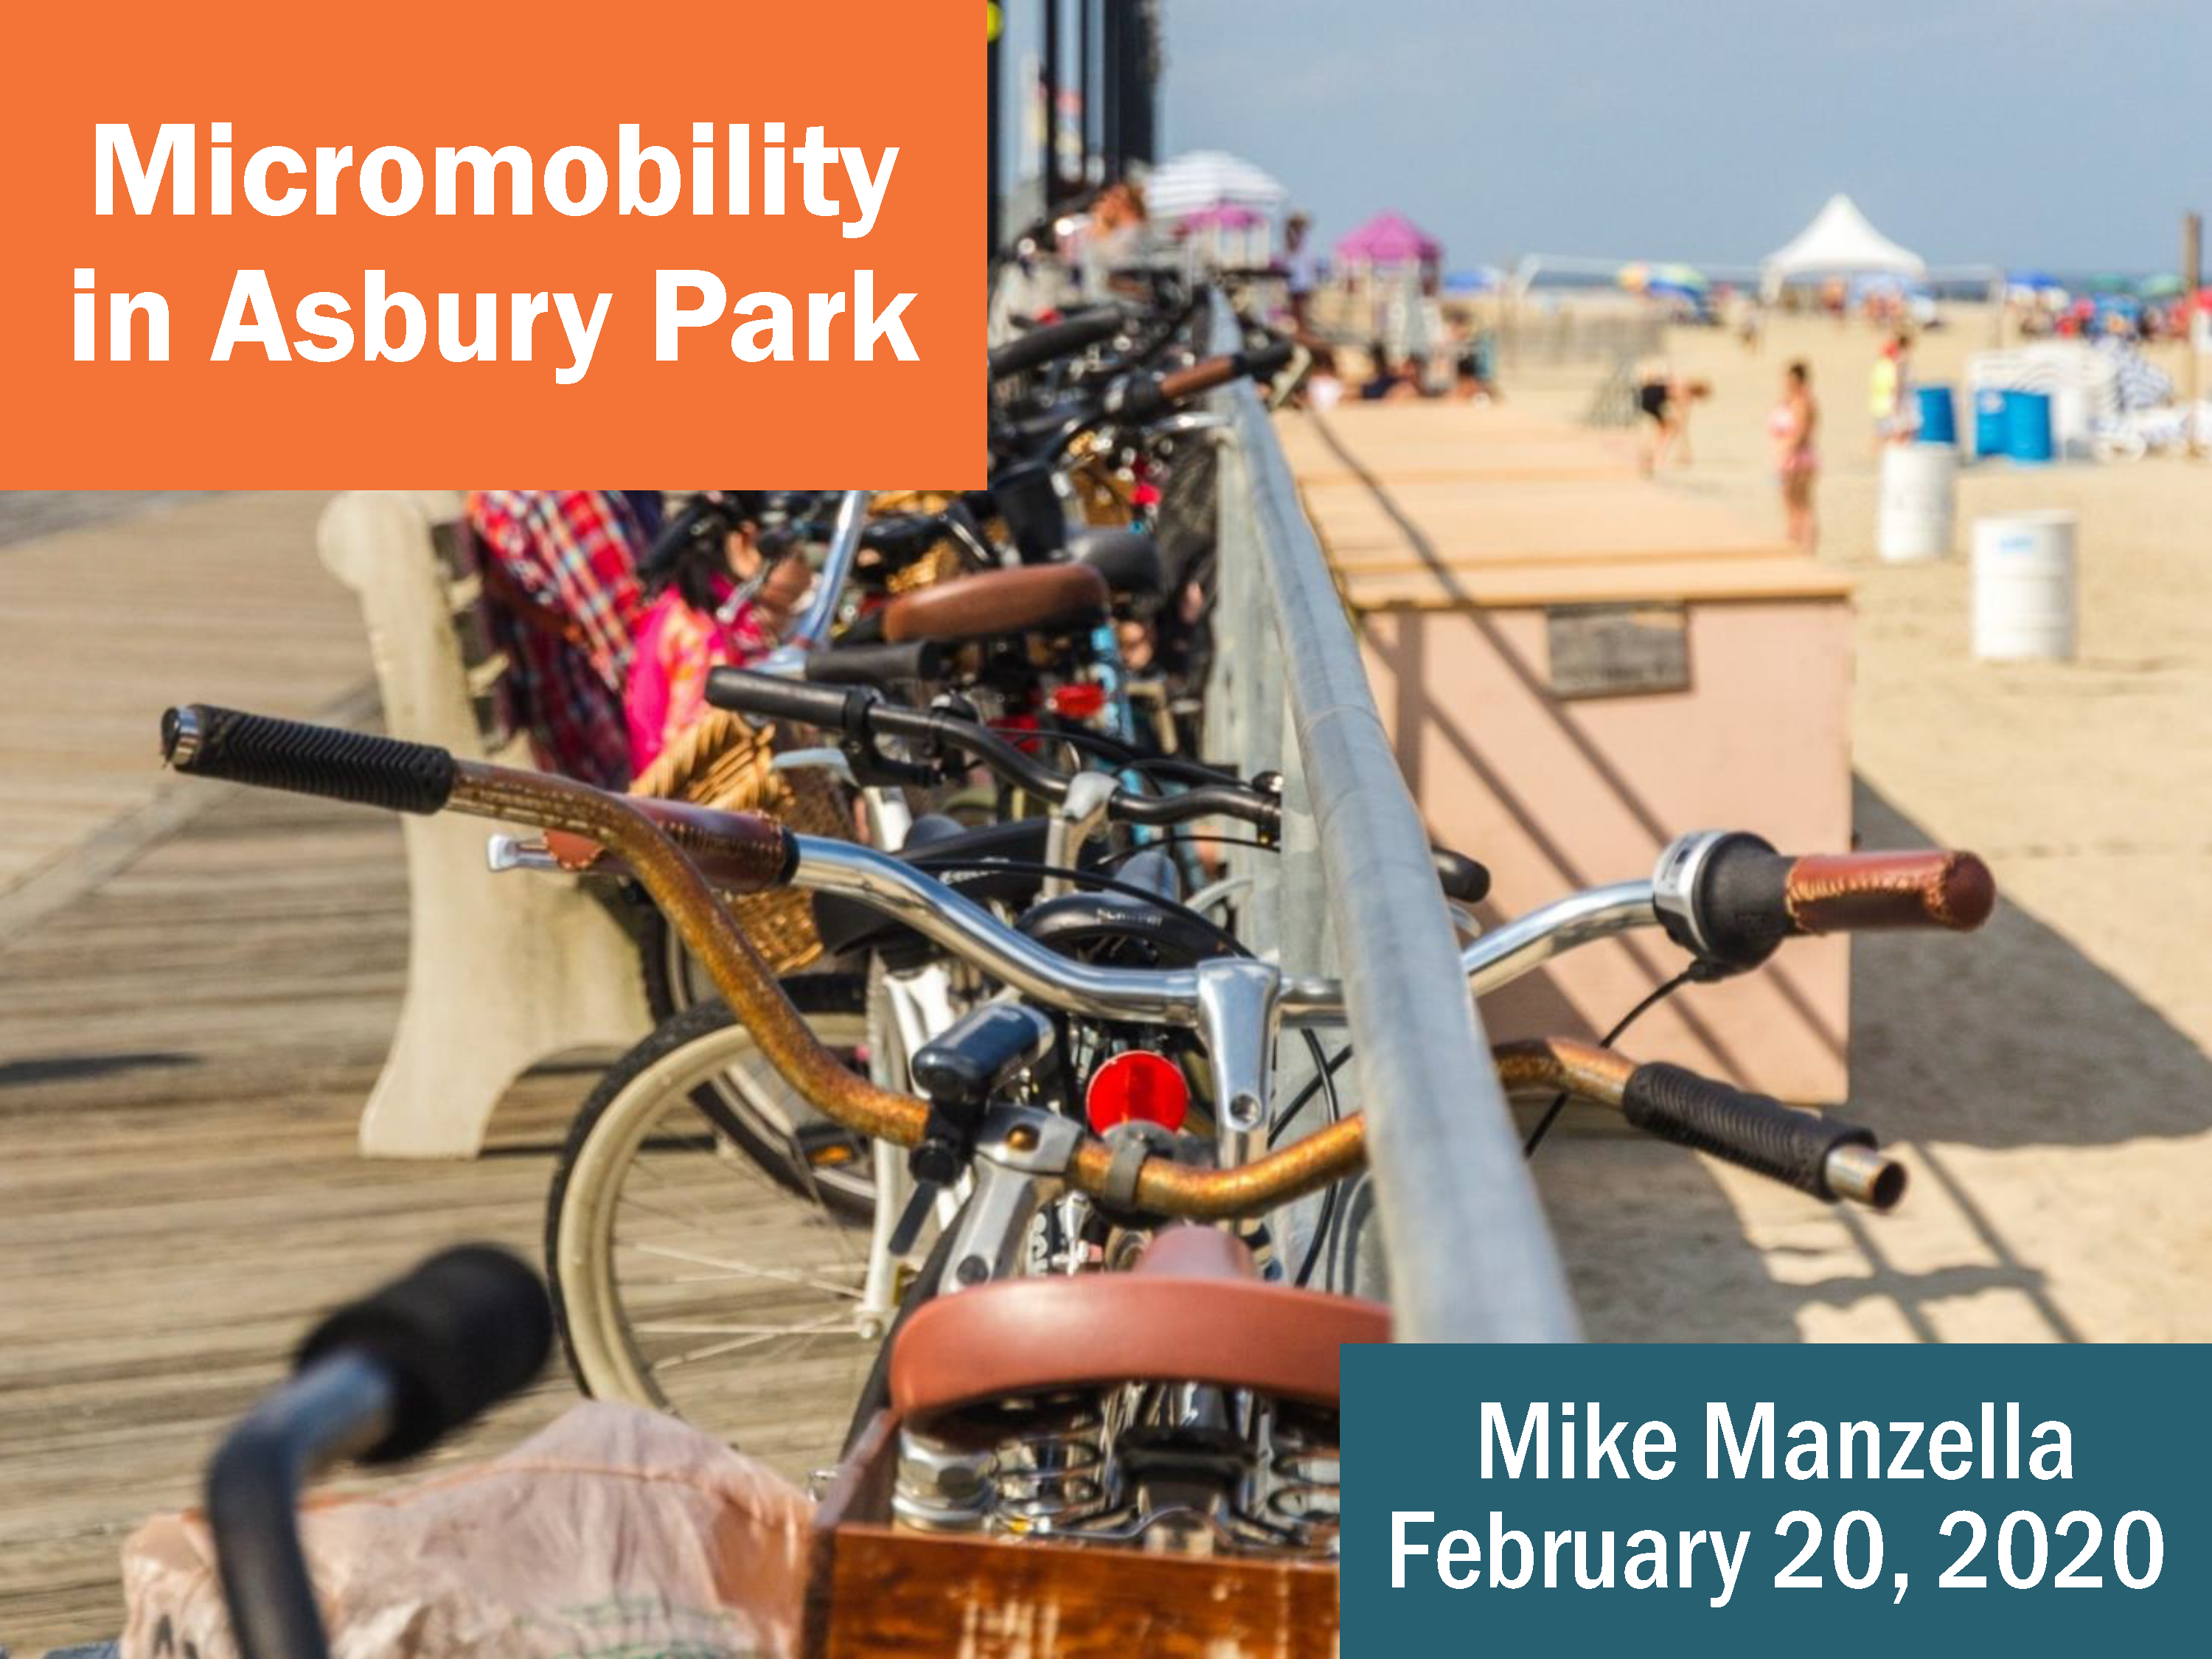 Micromobility in Asbury Park